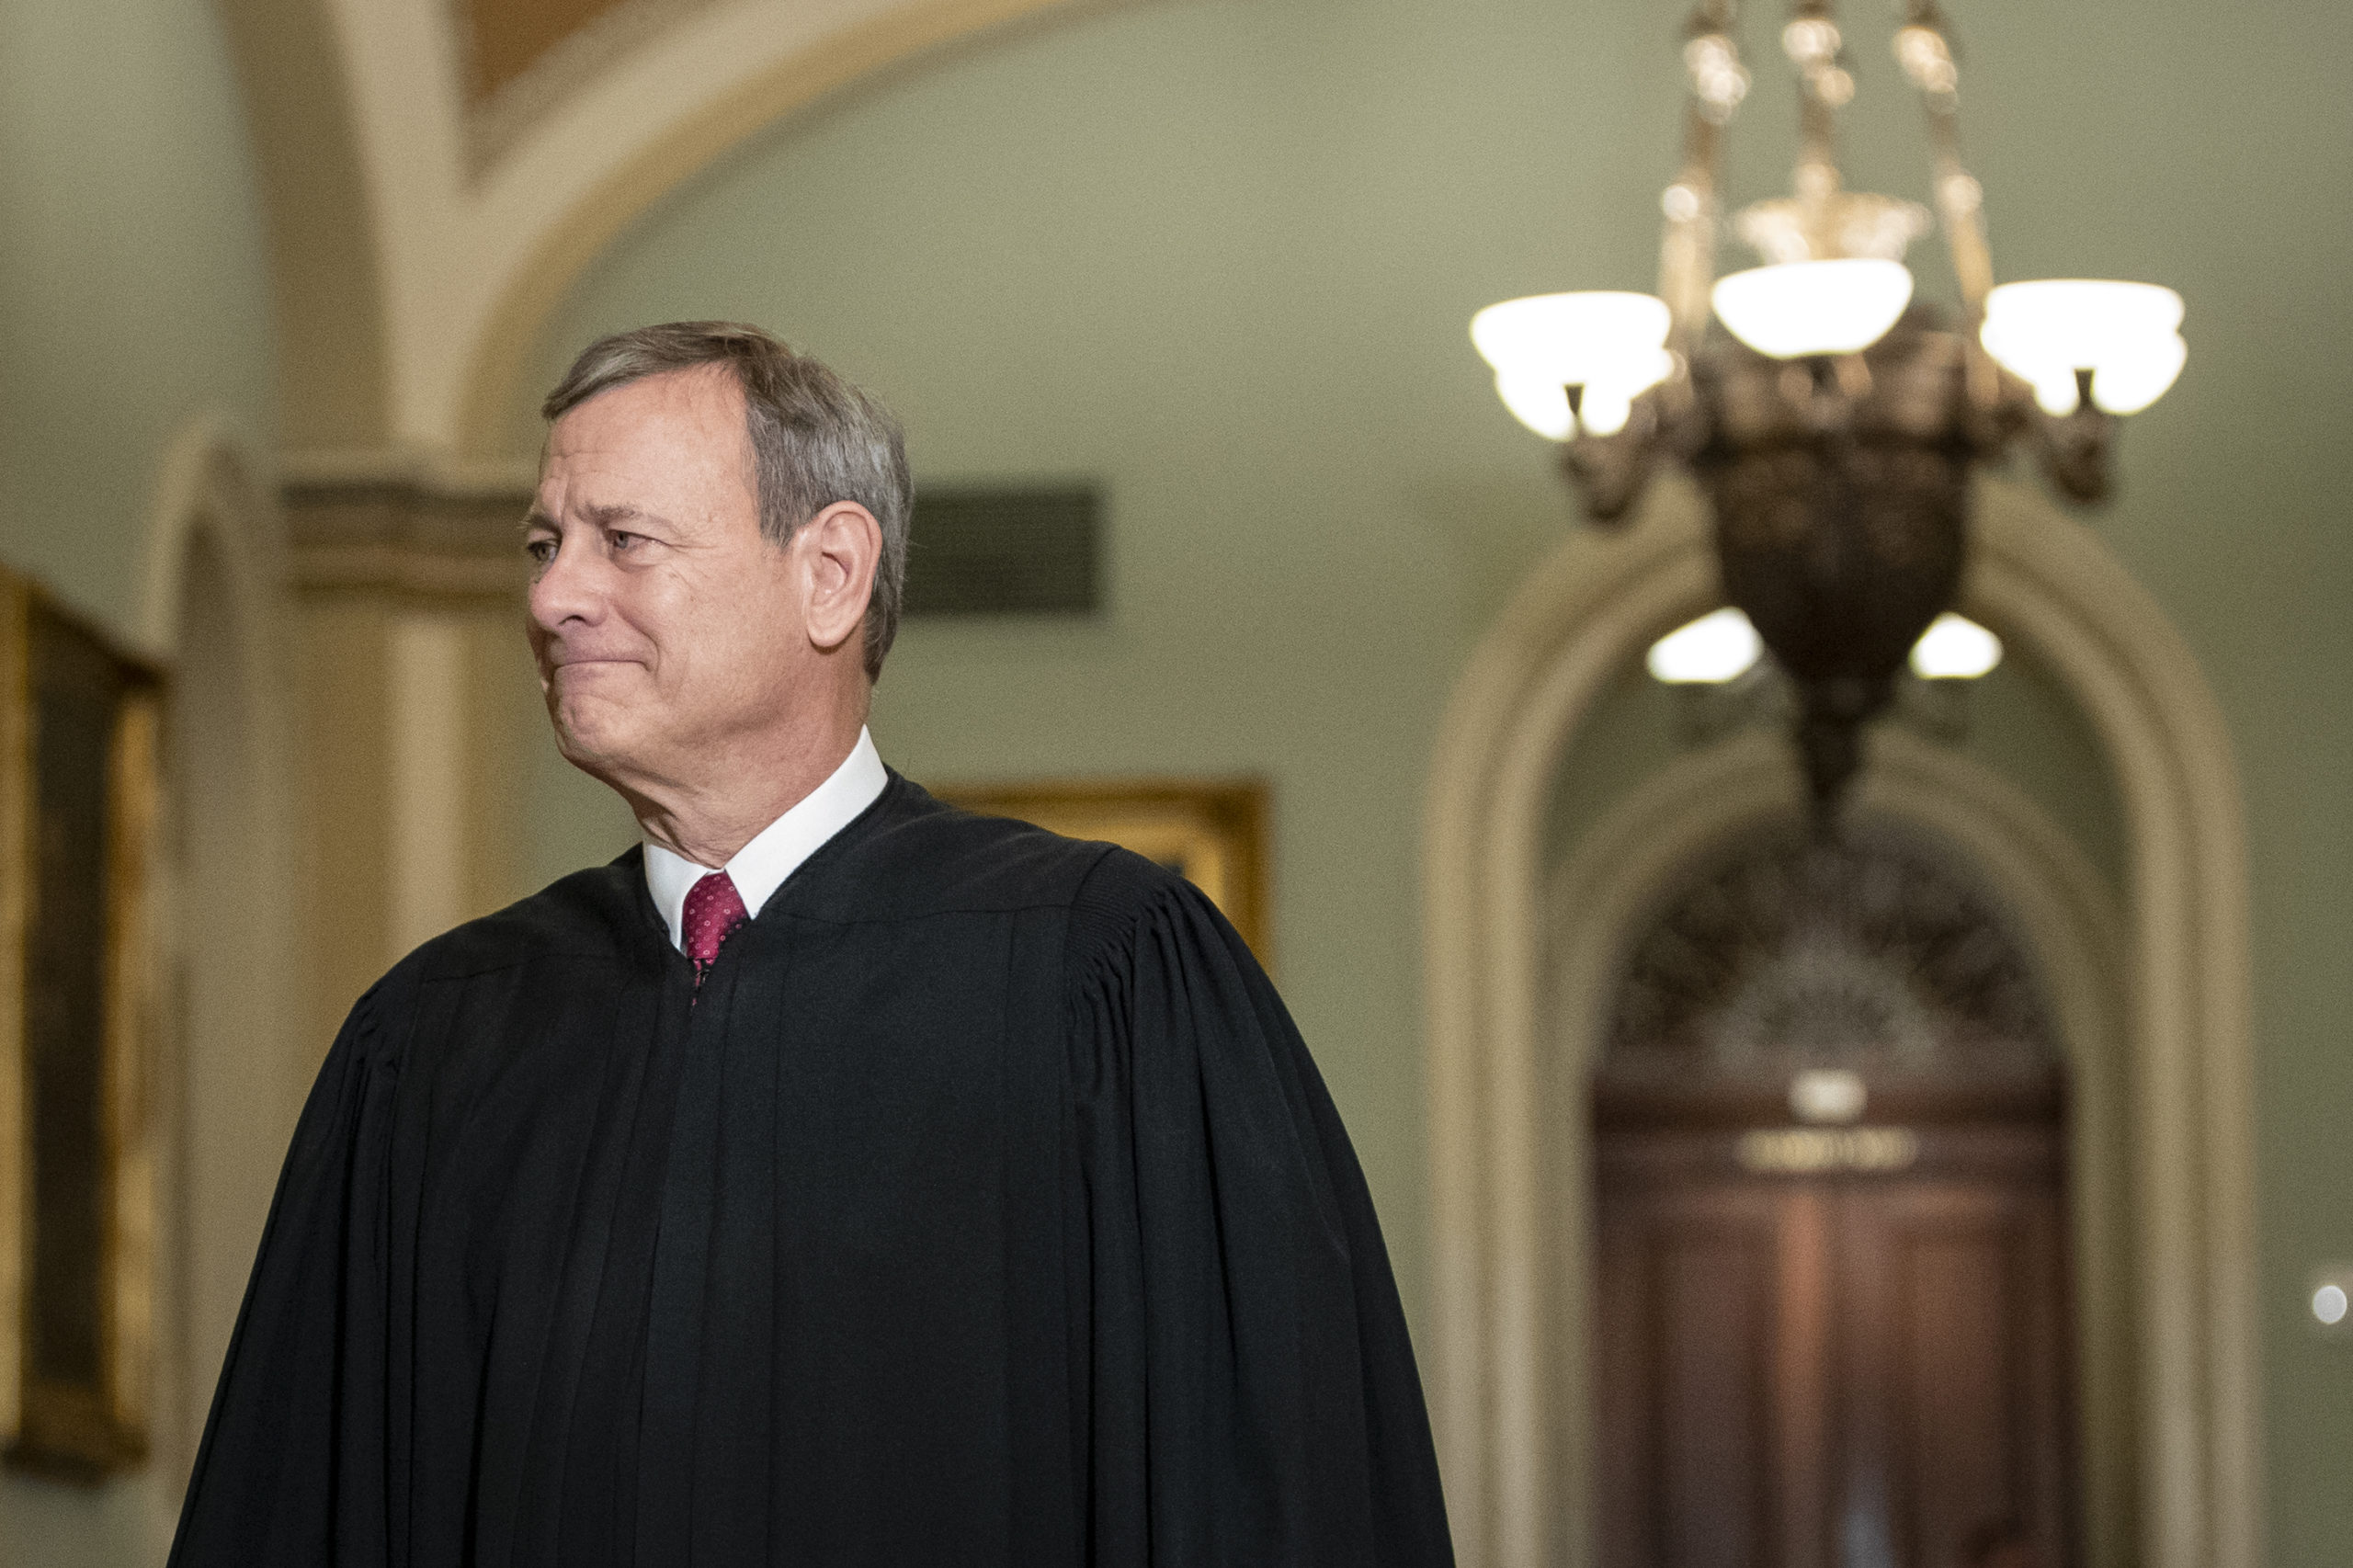 WASHINGTON, DC JANUARY 16: Supreme Court Chief Justice John Roberts arrives to the Senate chamber for impeachment proceedings at the U.S. Capitol on January 16, 2020 in Washington, DC. On Thursday, the House impeachment managers will read the articles of impeachment against President Trump in the Senate chamber and the chief justice of the Supreme Court and every senator will be sworn in. (Photo by Drew Angerer/Getty Images)